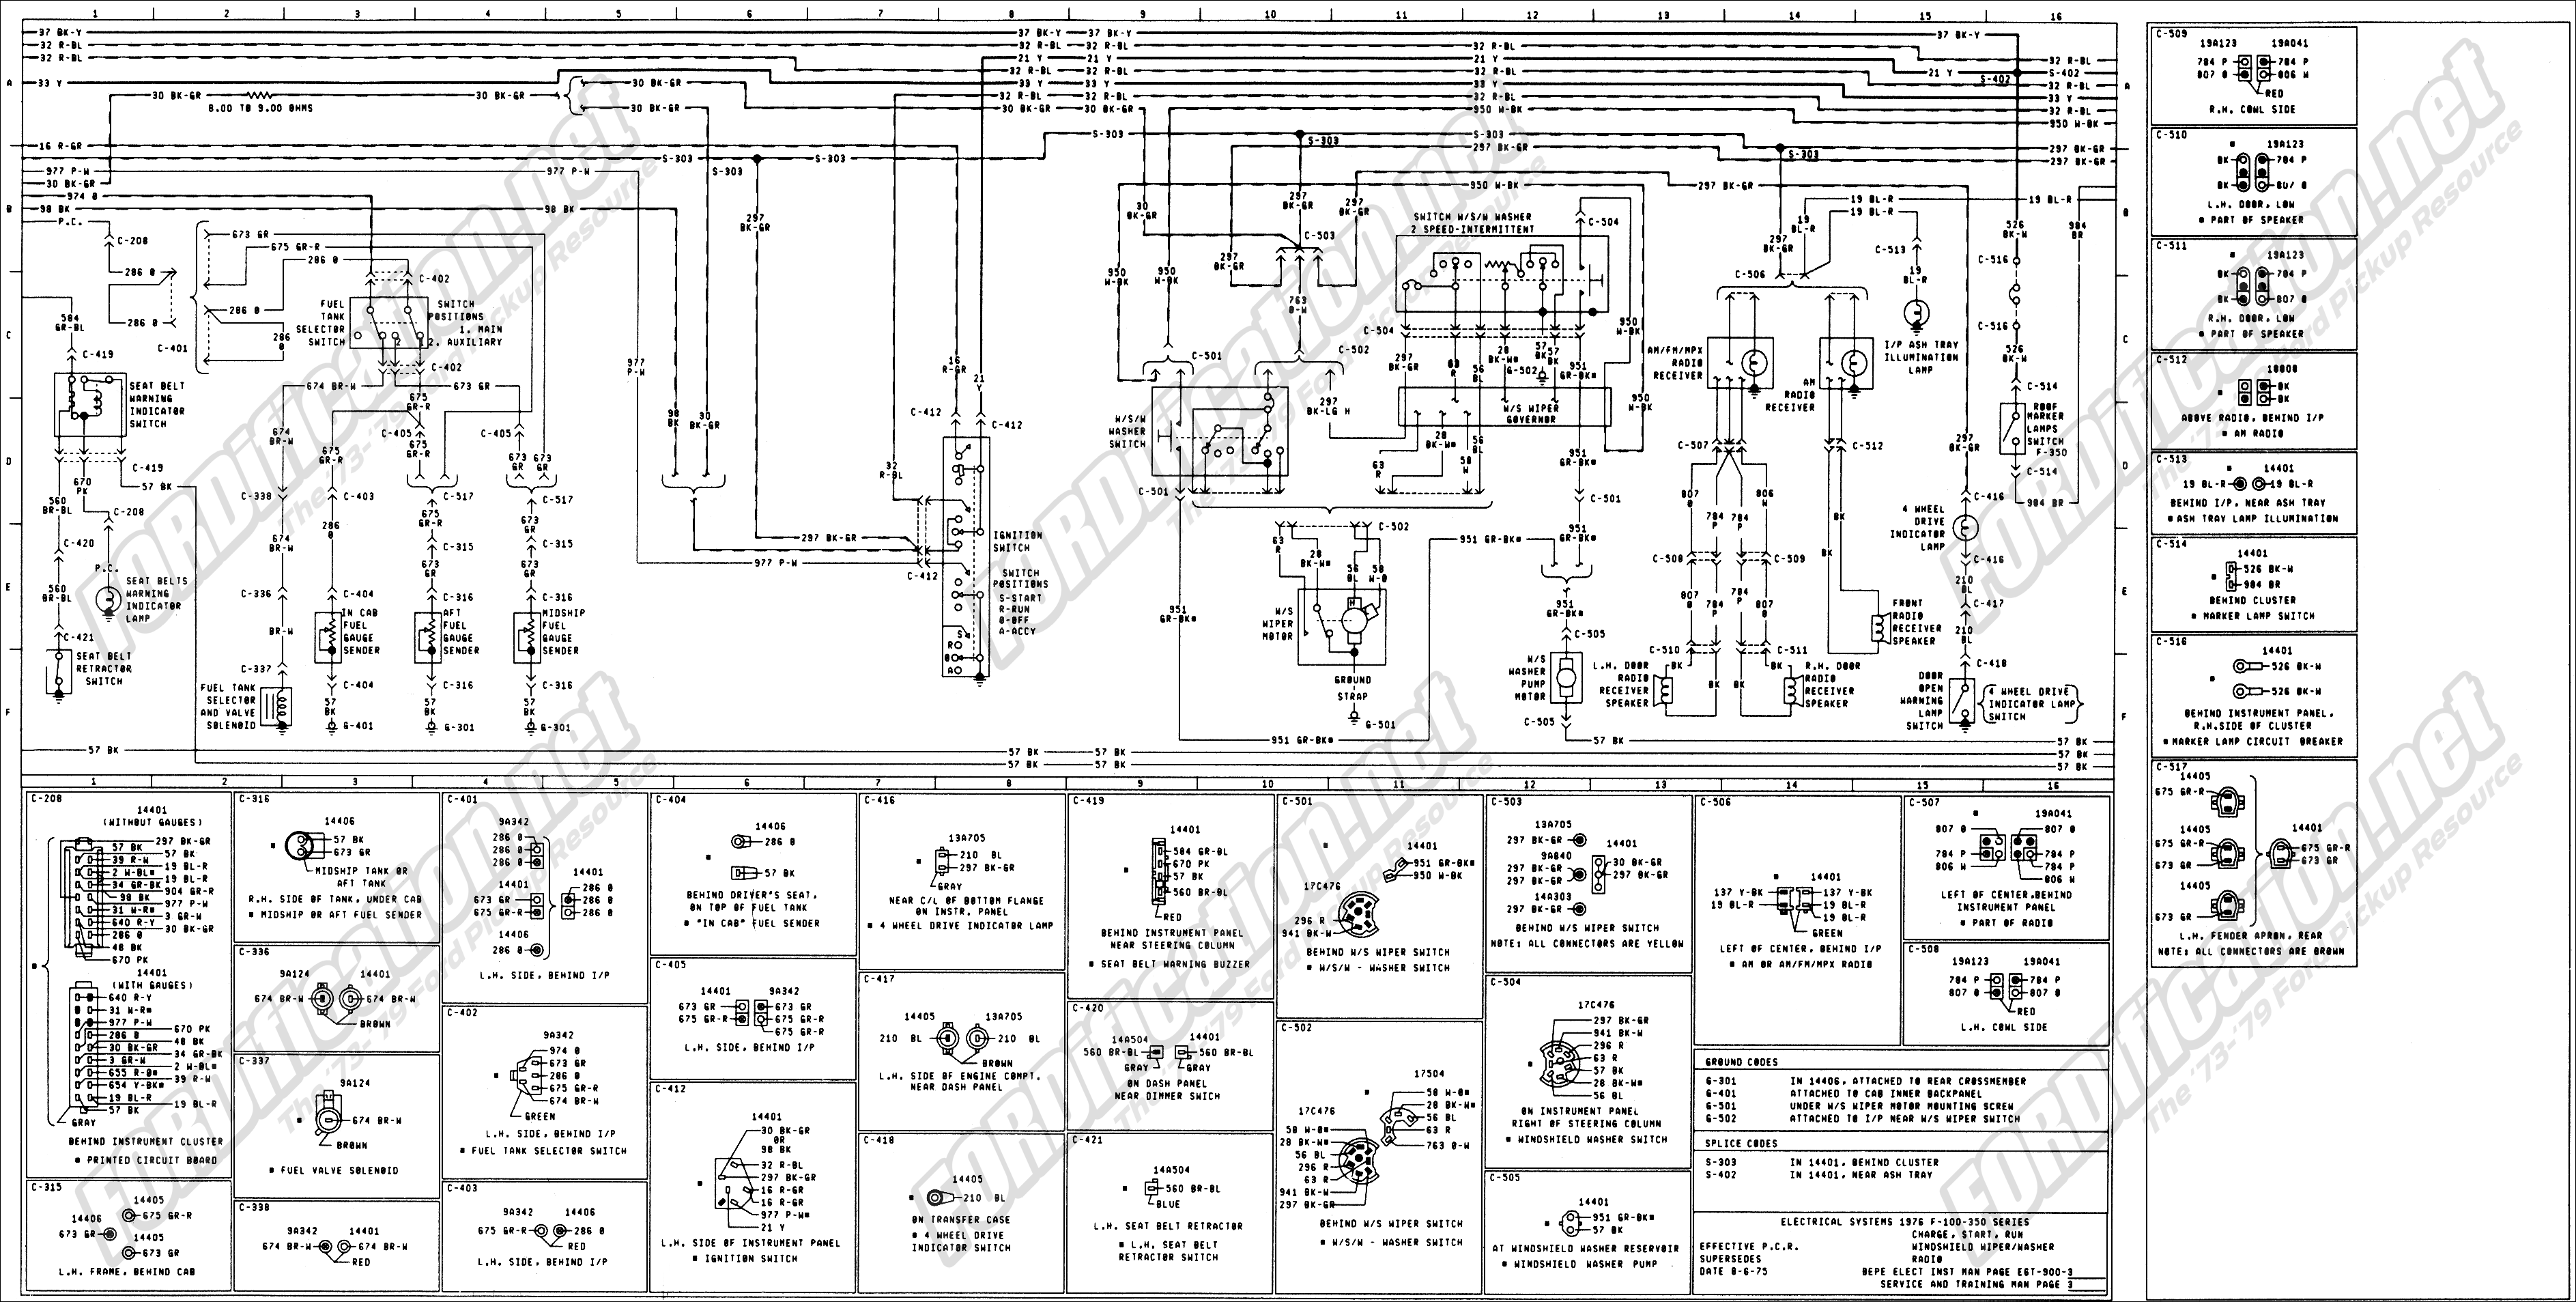 wiring_76master_3of9 1973 1979 ford truck wiring diagrams & schematics fordification net 2016 ford explorer wiring diagram at aneh.co